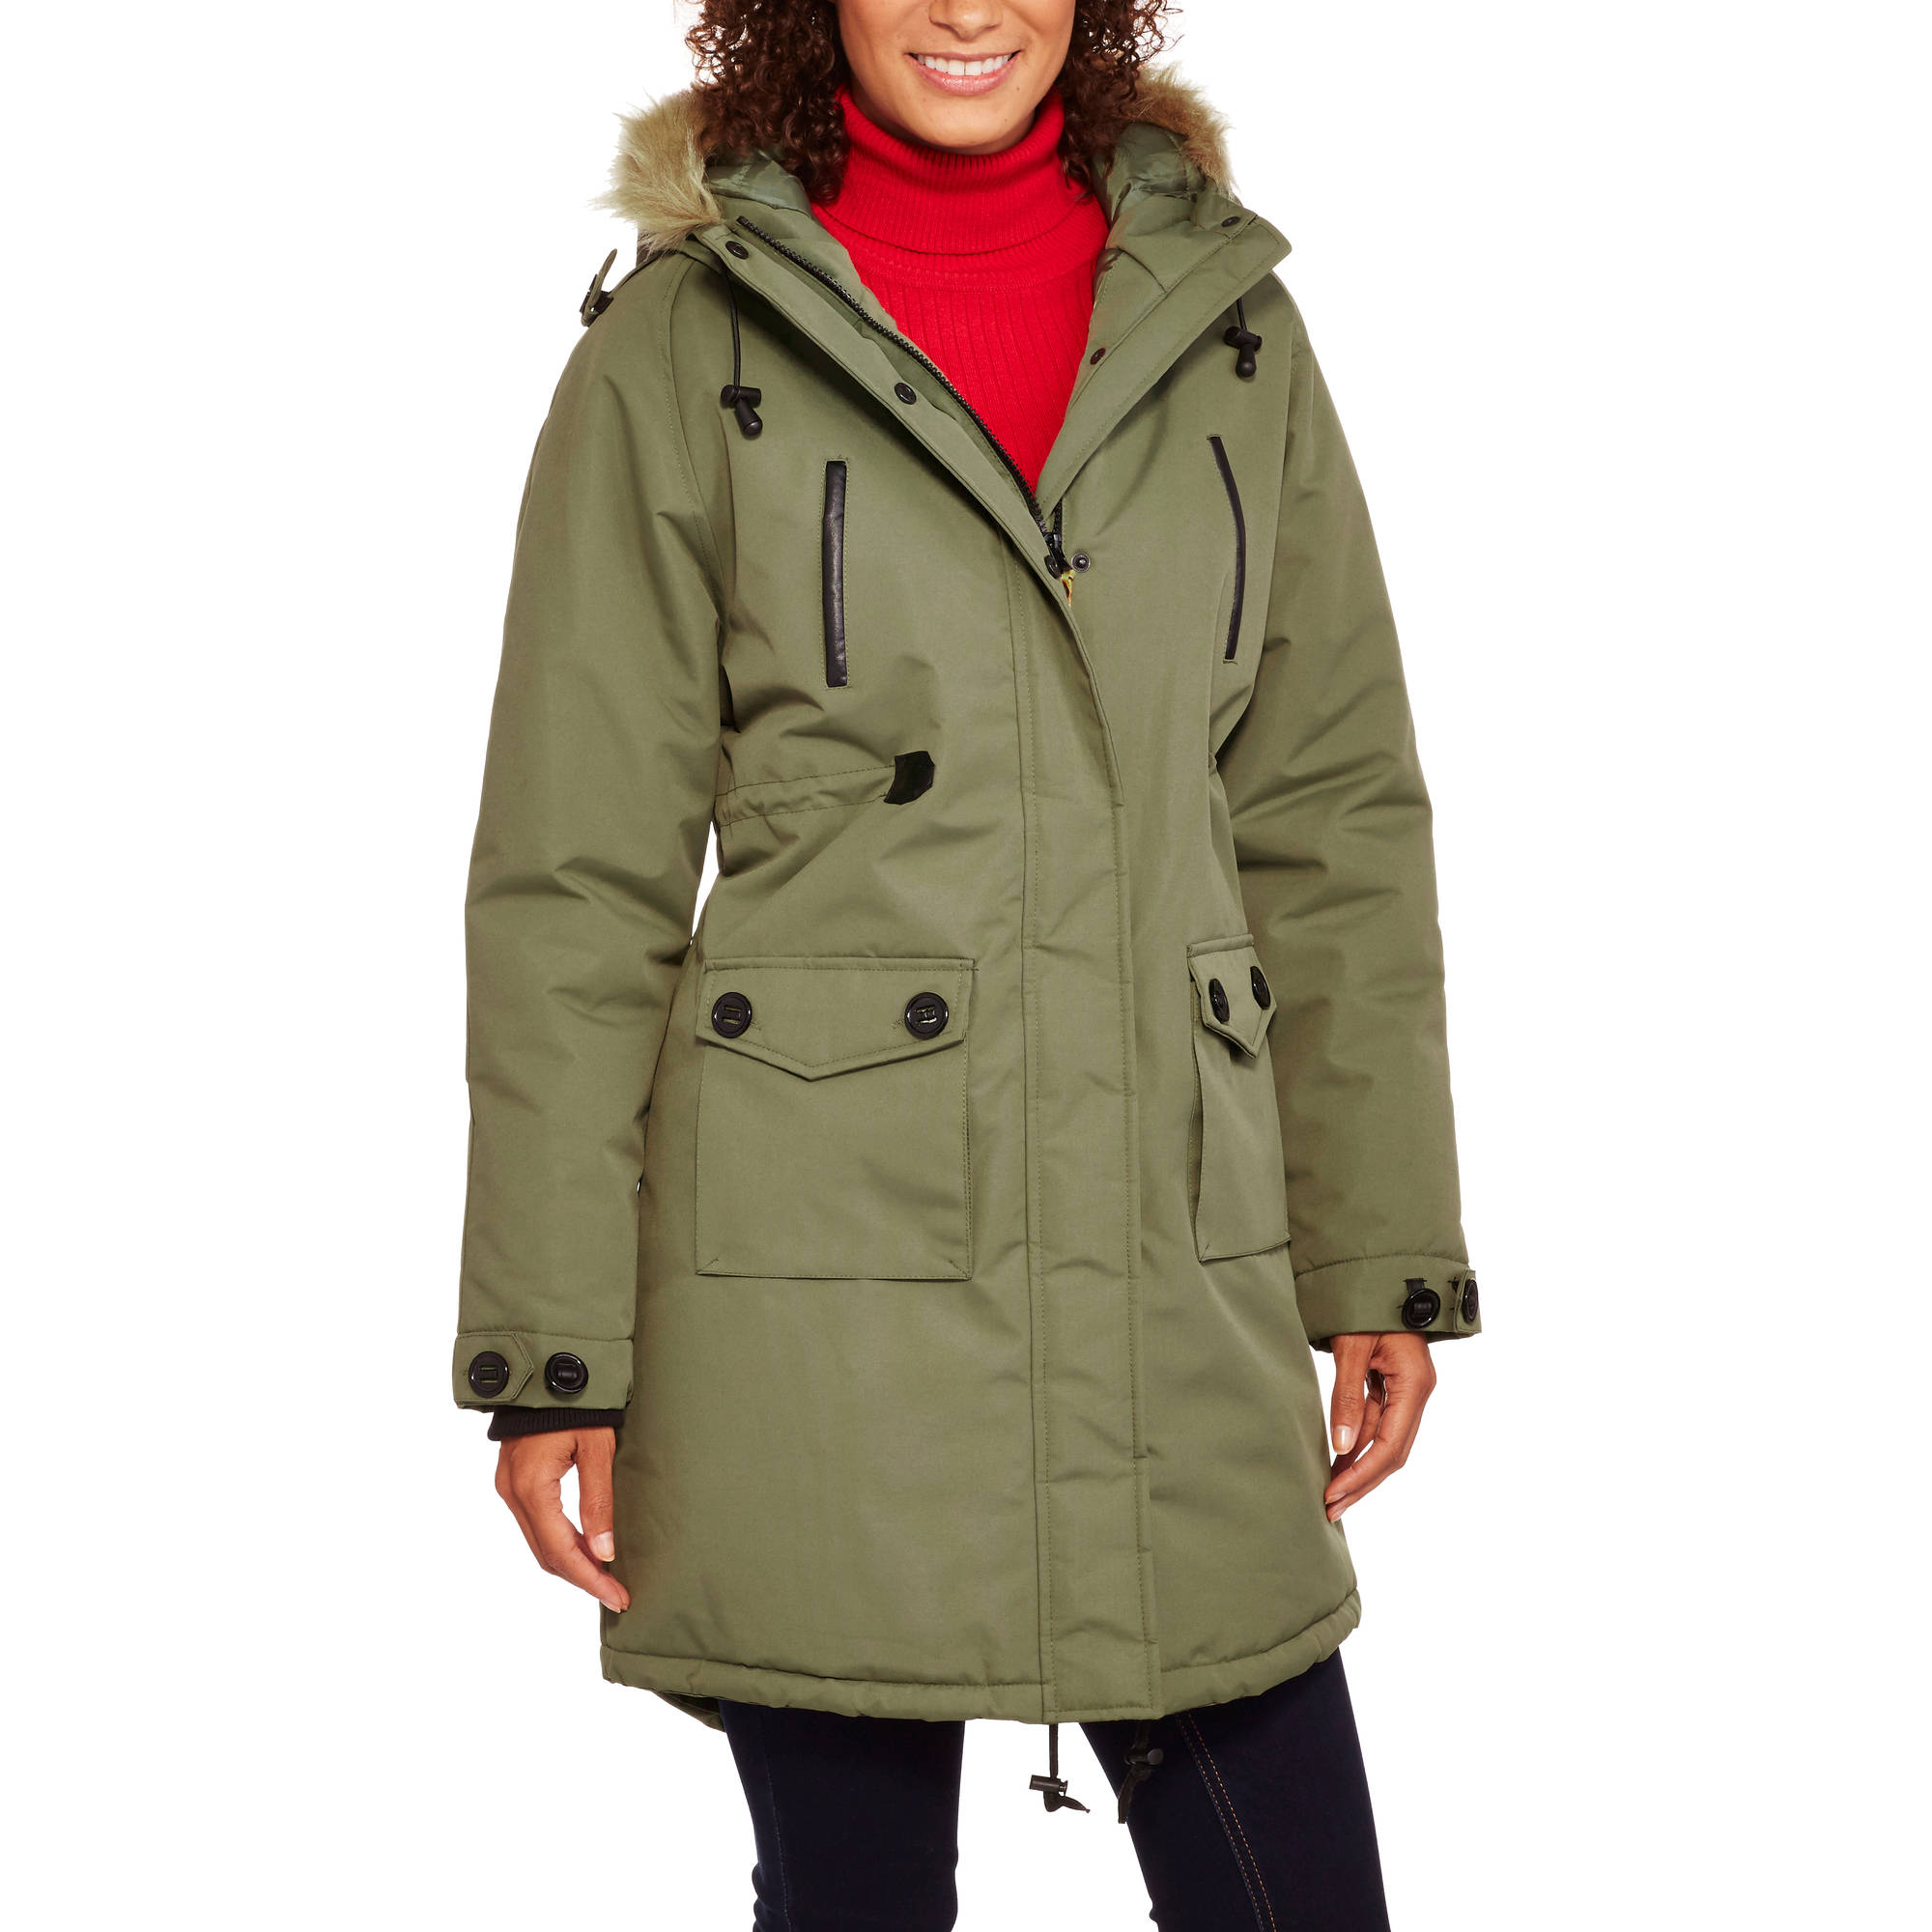 Fahrenheit Women's Long Heavyweight Puffer Coat with Fur-Trim Hood